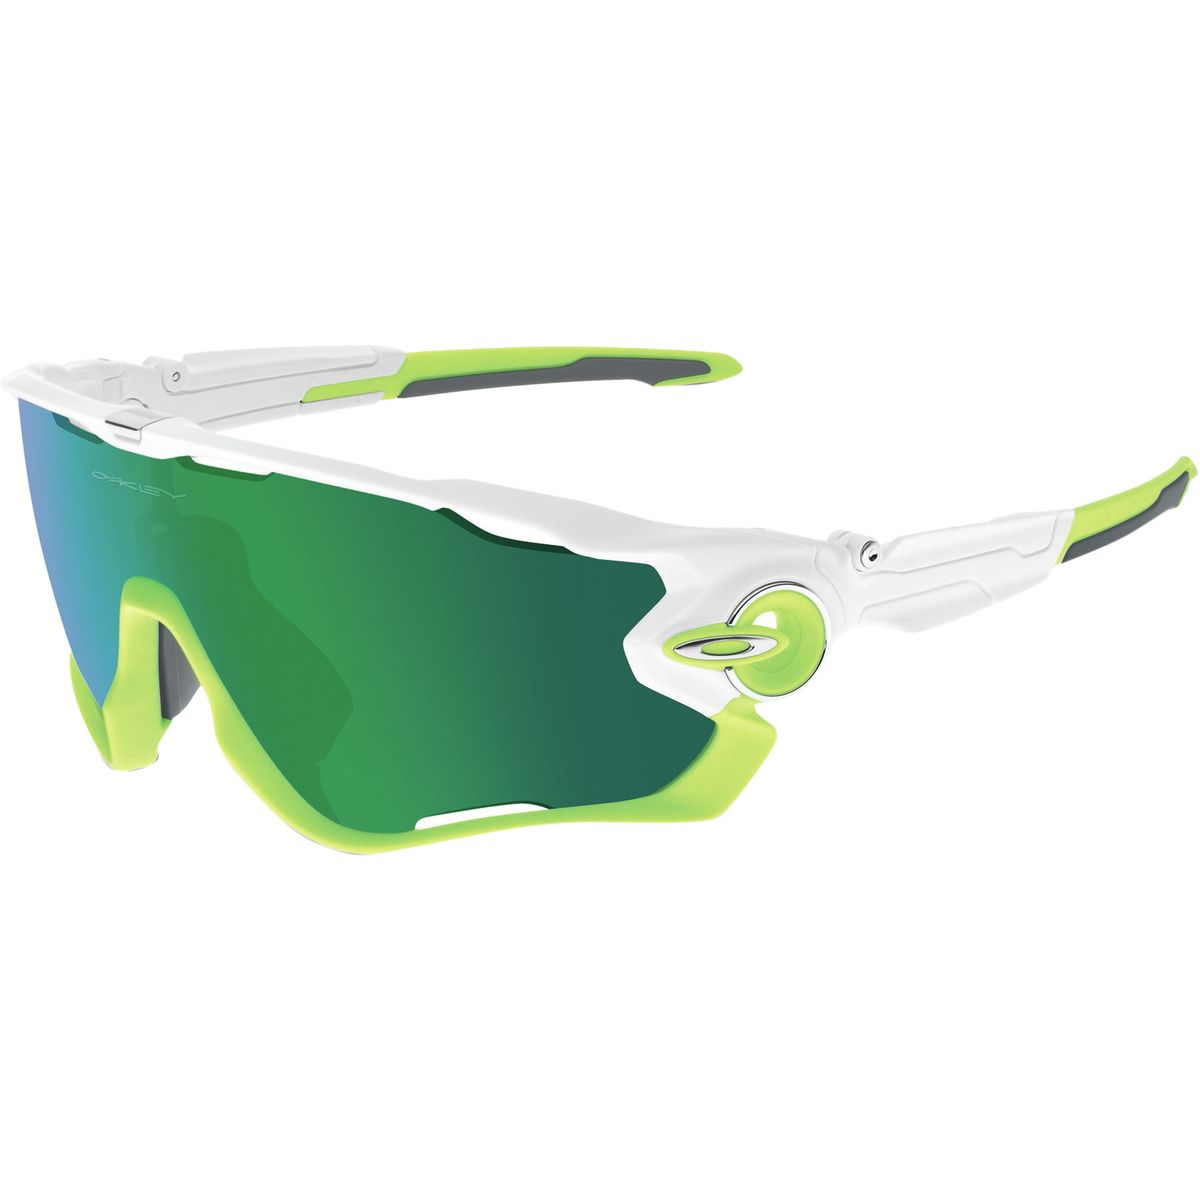 Oakley Jawbreaker Sunglasses Men's